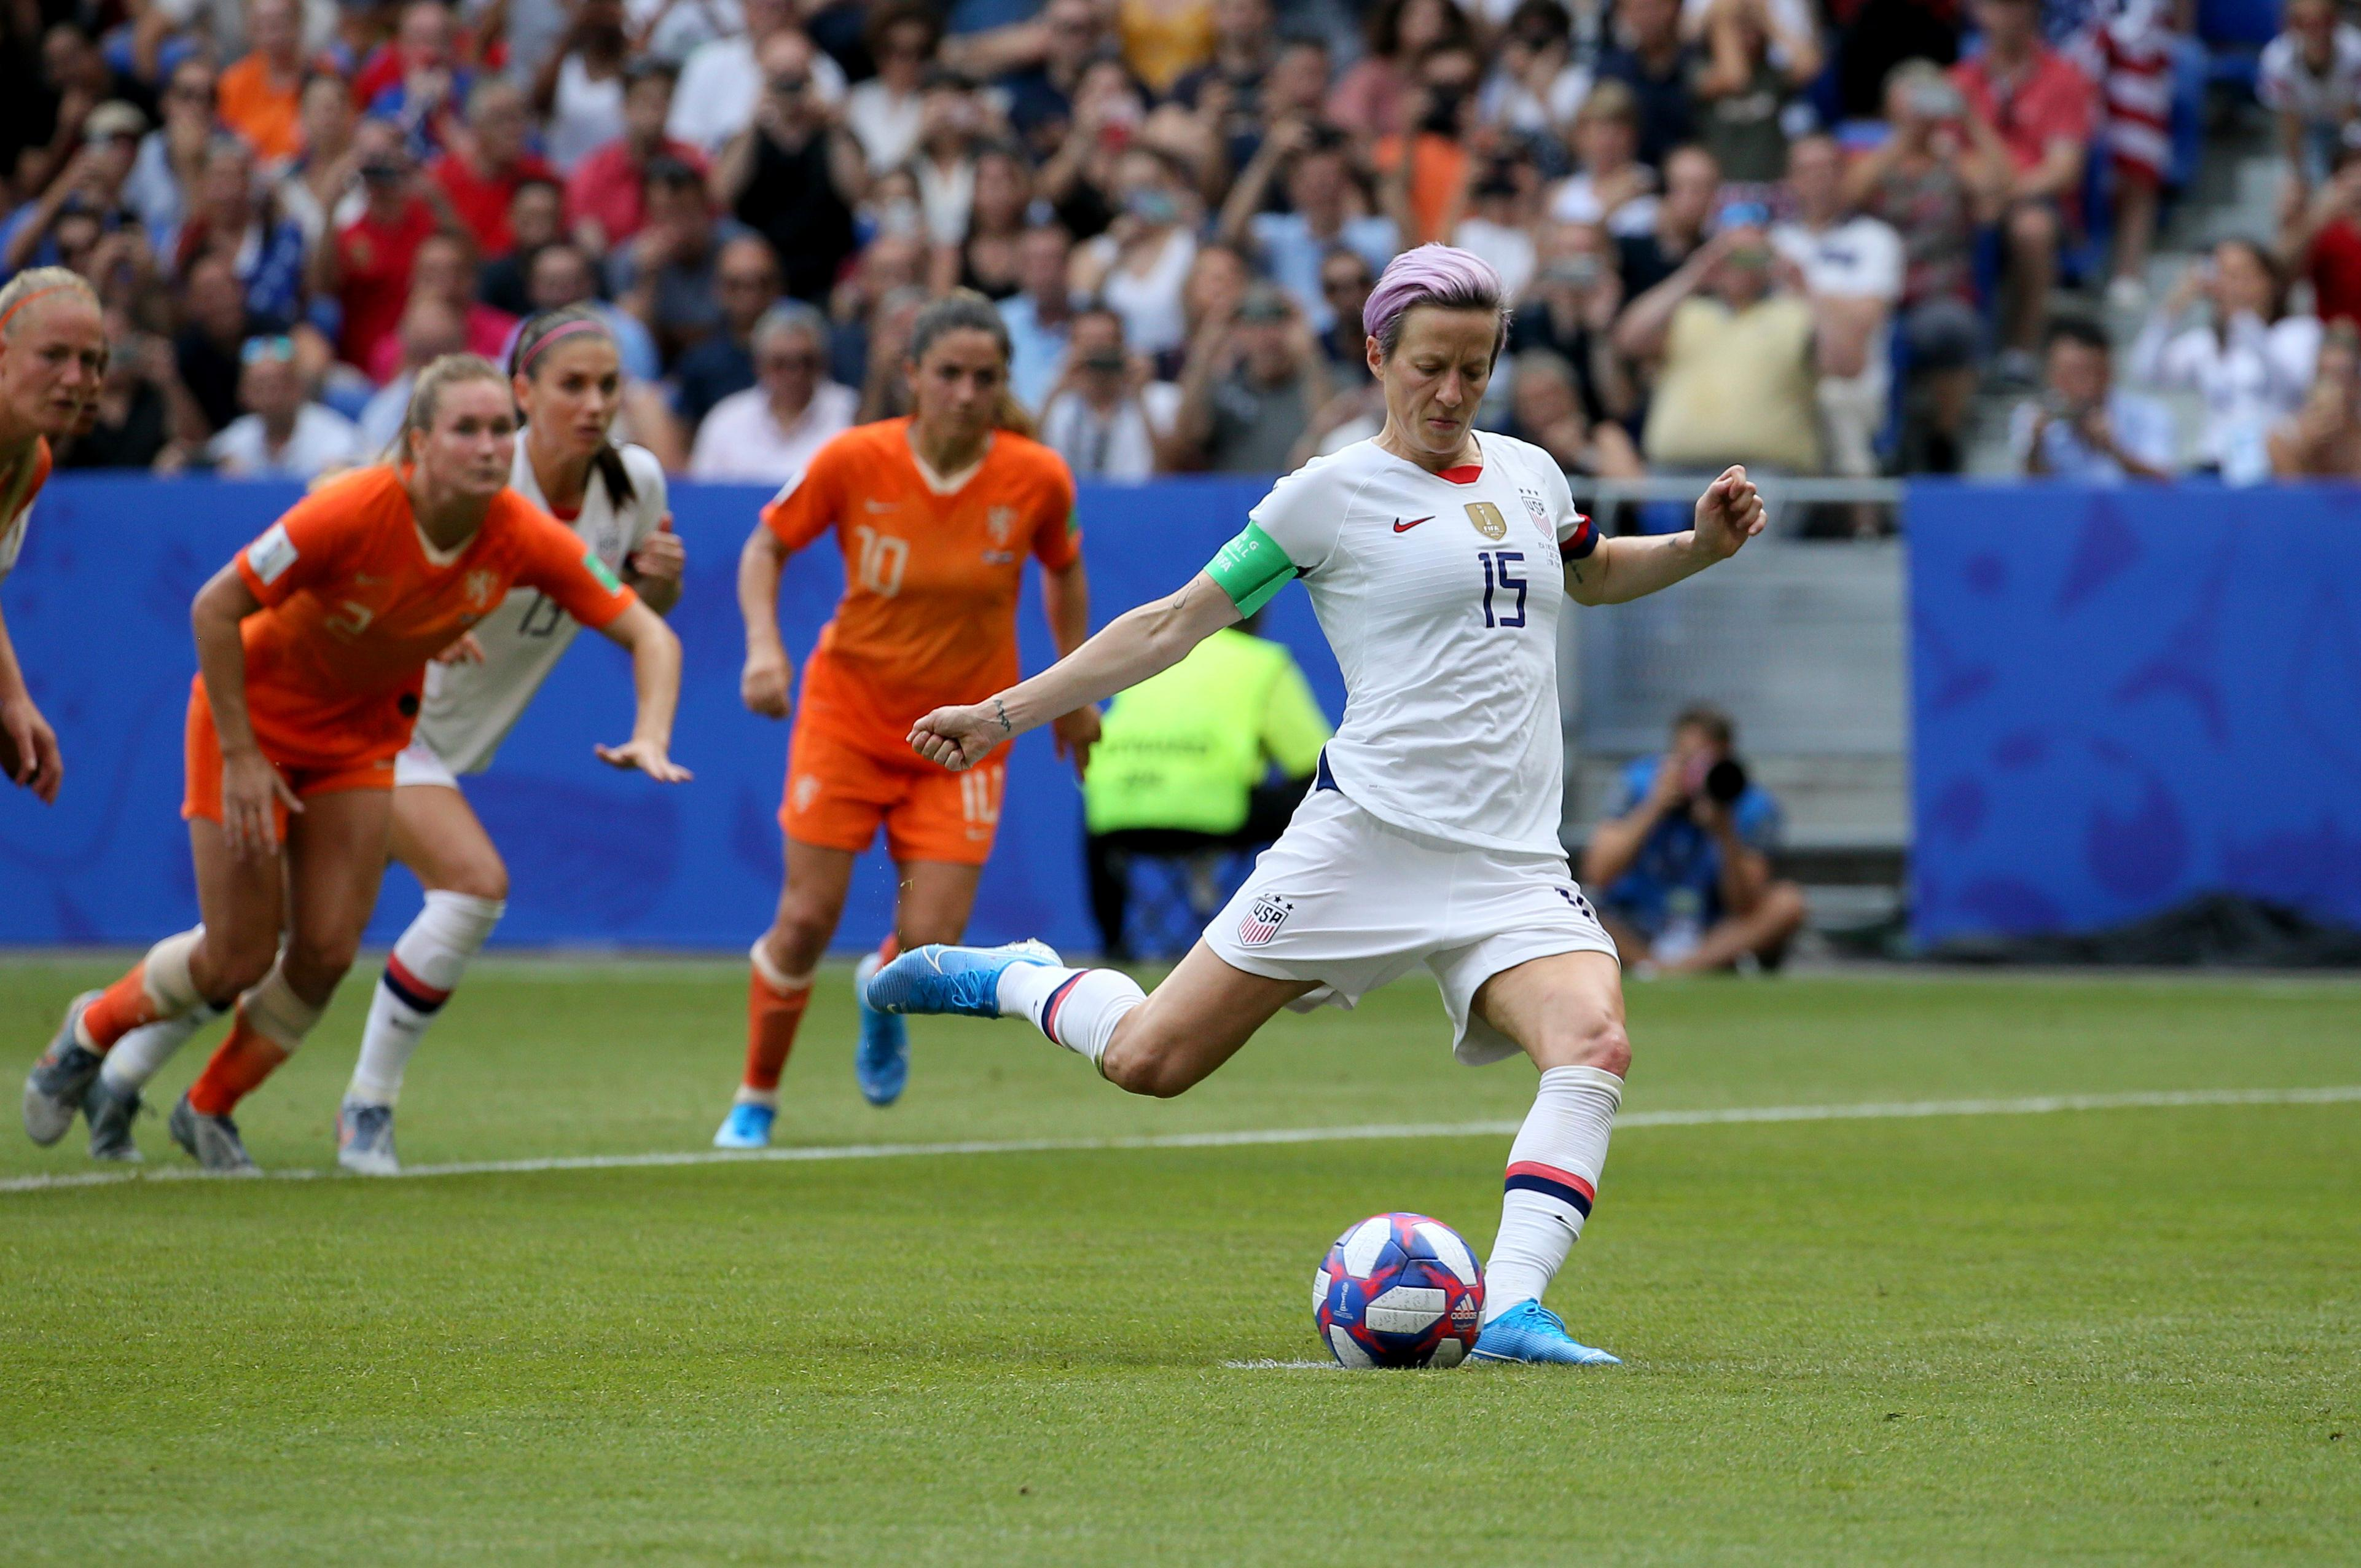 United States' Megan Rapinoe scores her side's opening goal from a penalty shot during the Women's World Cup final soccer match between US and The Netherlands at the Stade de Lyon in Decines, outside Lyon, France, Sunday, July 7, 2019. (AP Photo/David Vincent)